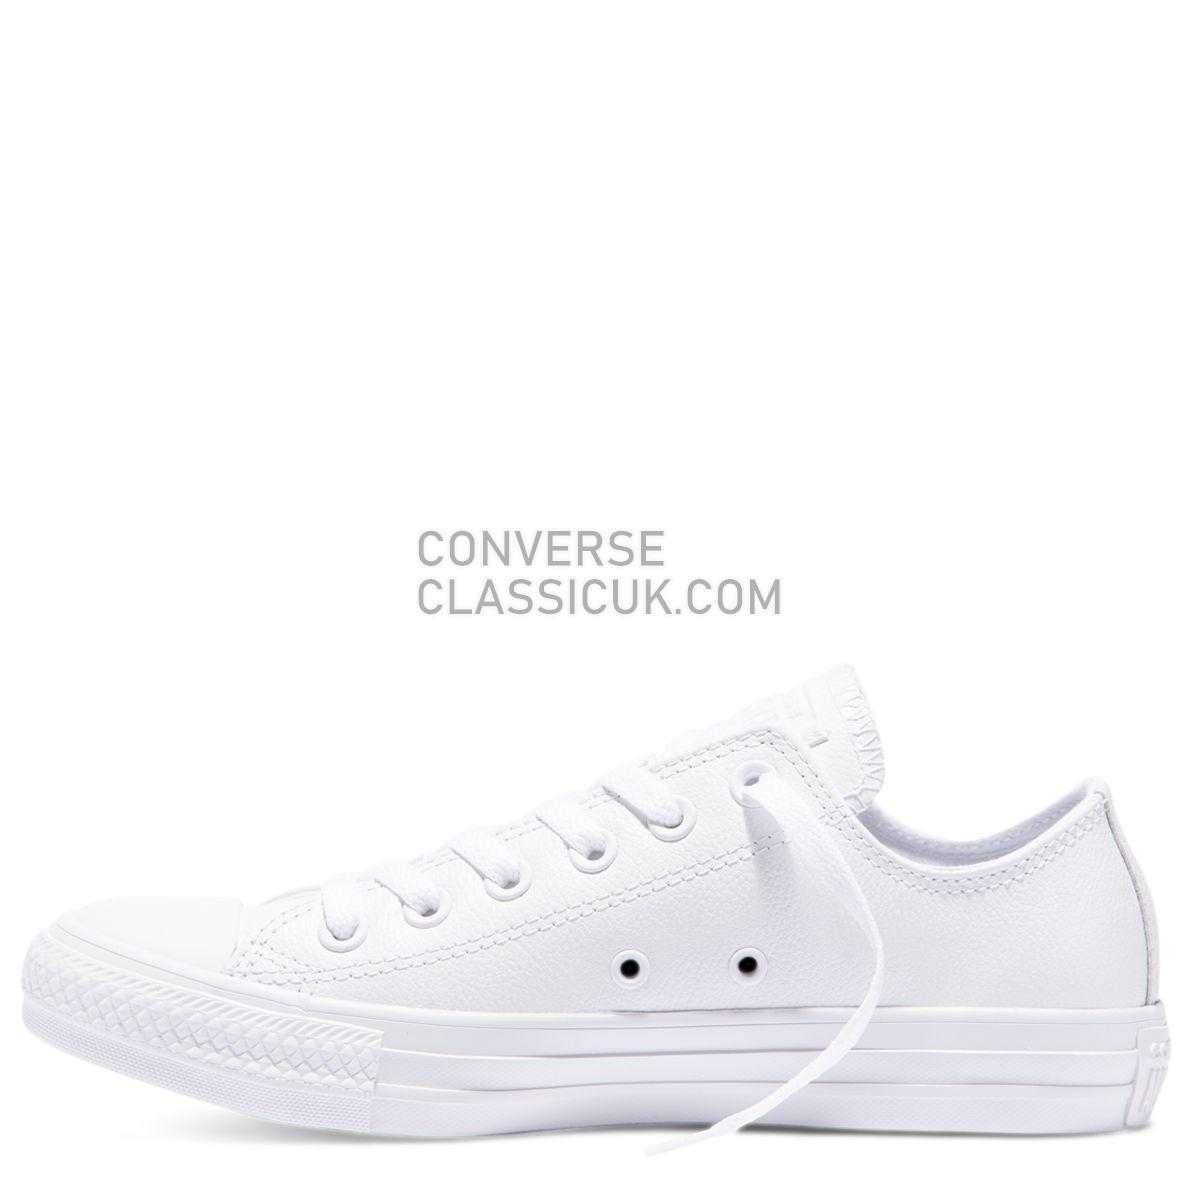 Converse Buy Chuck Taylor All Star Mono Leather Low Top White Online Mens Womens Unisex 136823 White Shoes